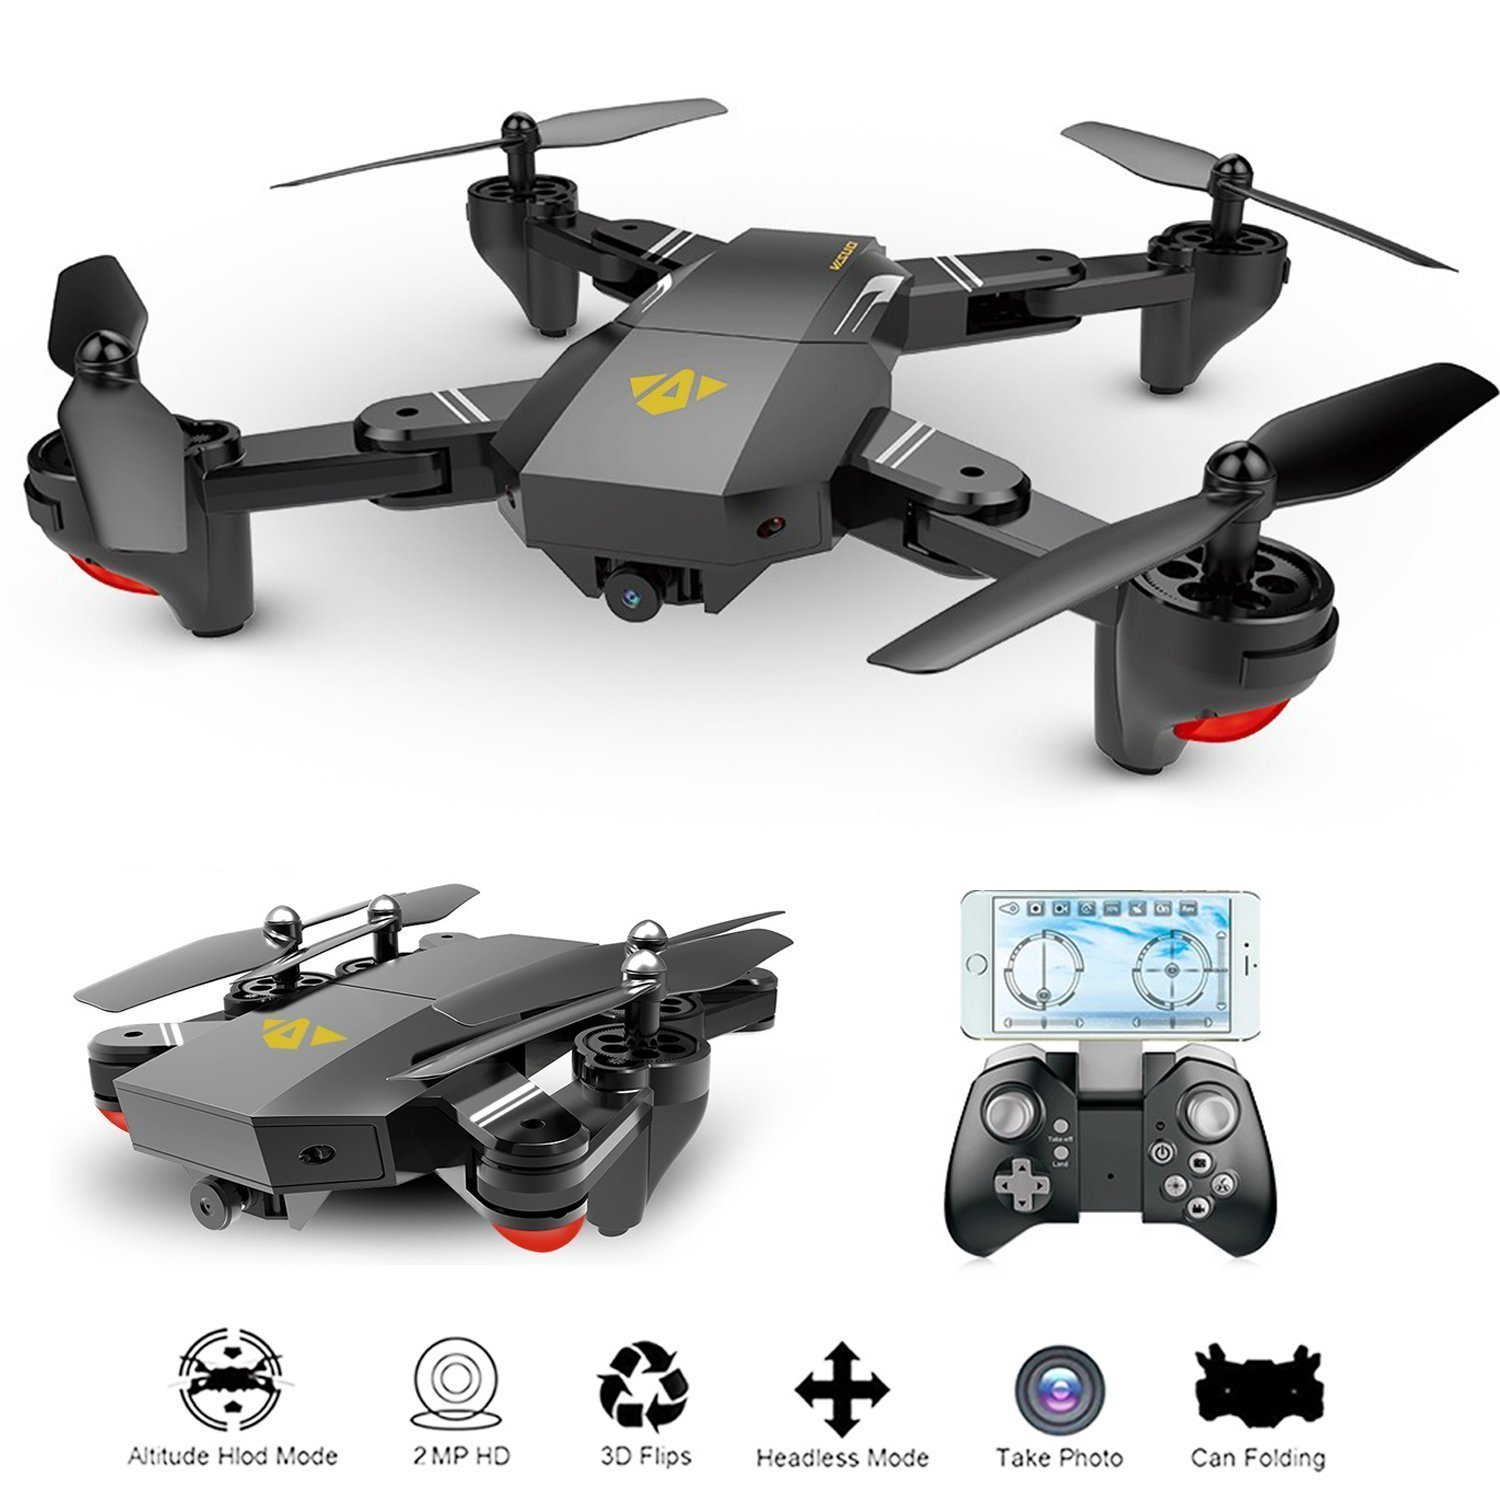 DJI Mavic Alike Advance HD Camera Drone 2.0MP Wifi FPV Quadcopter with 720P 120° Wide Angle Camera Foldable Altitude Hold Drone Helicopter Controlled with Remote Controller | Smartphone